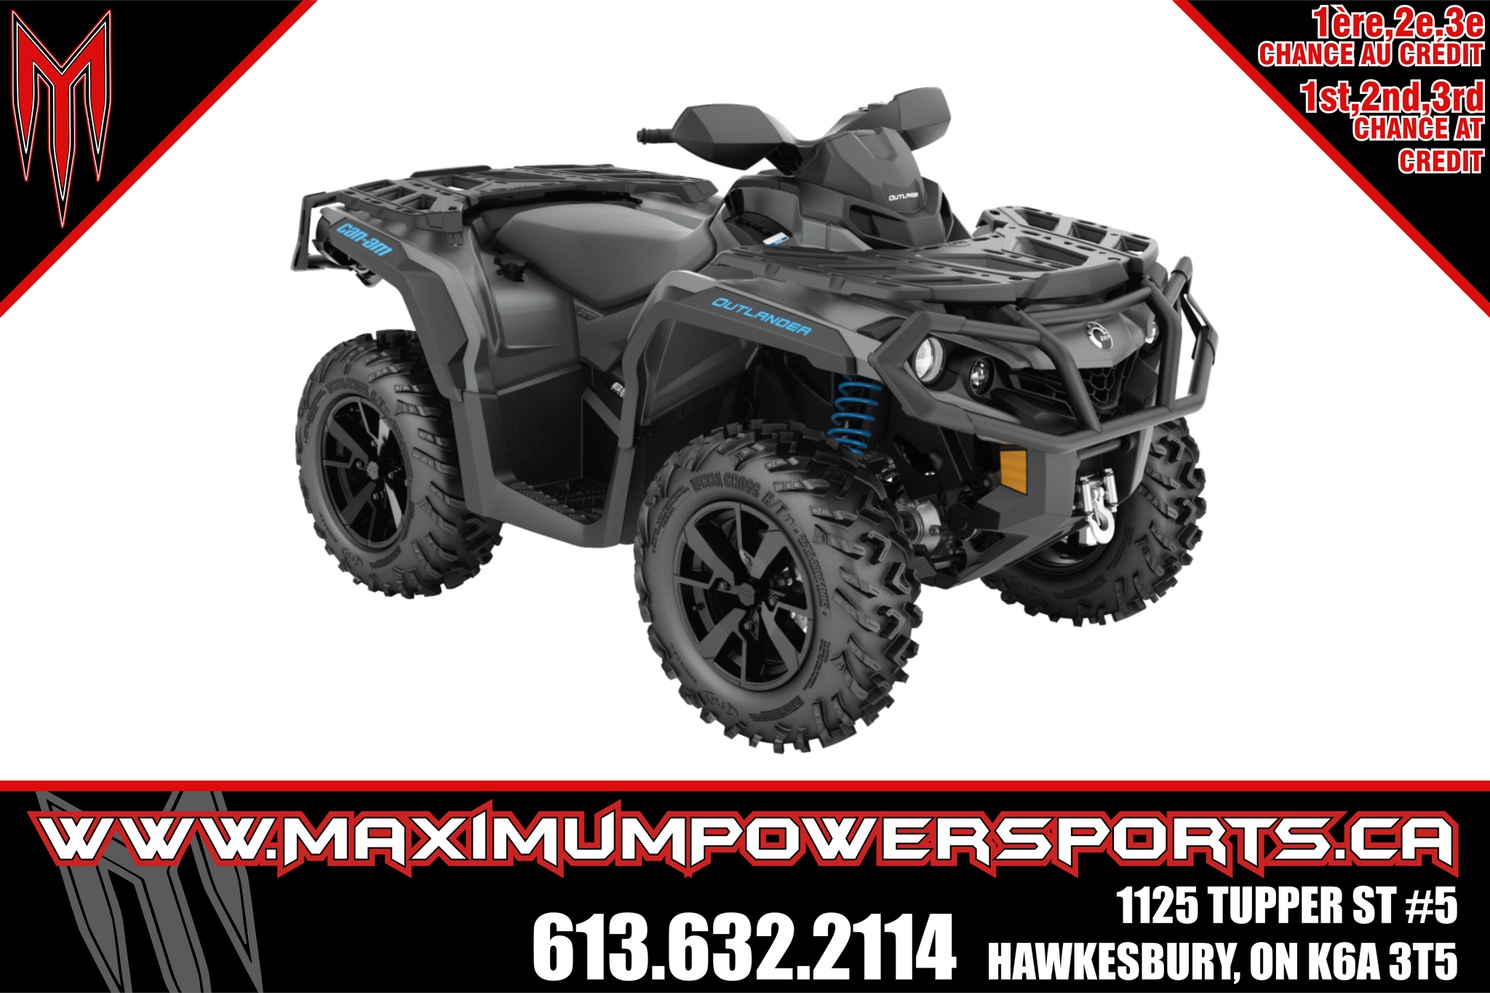 2021 Can-Am OUTLANDER  XT 650 - OUTLANDER  XT 650